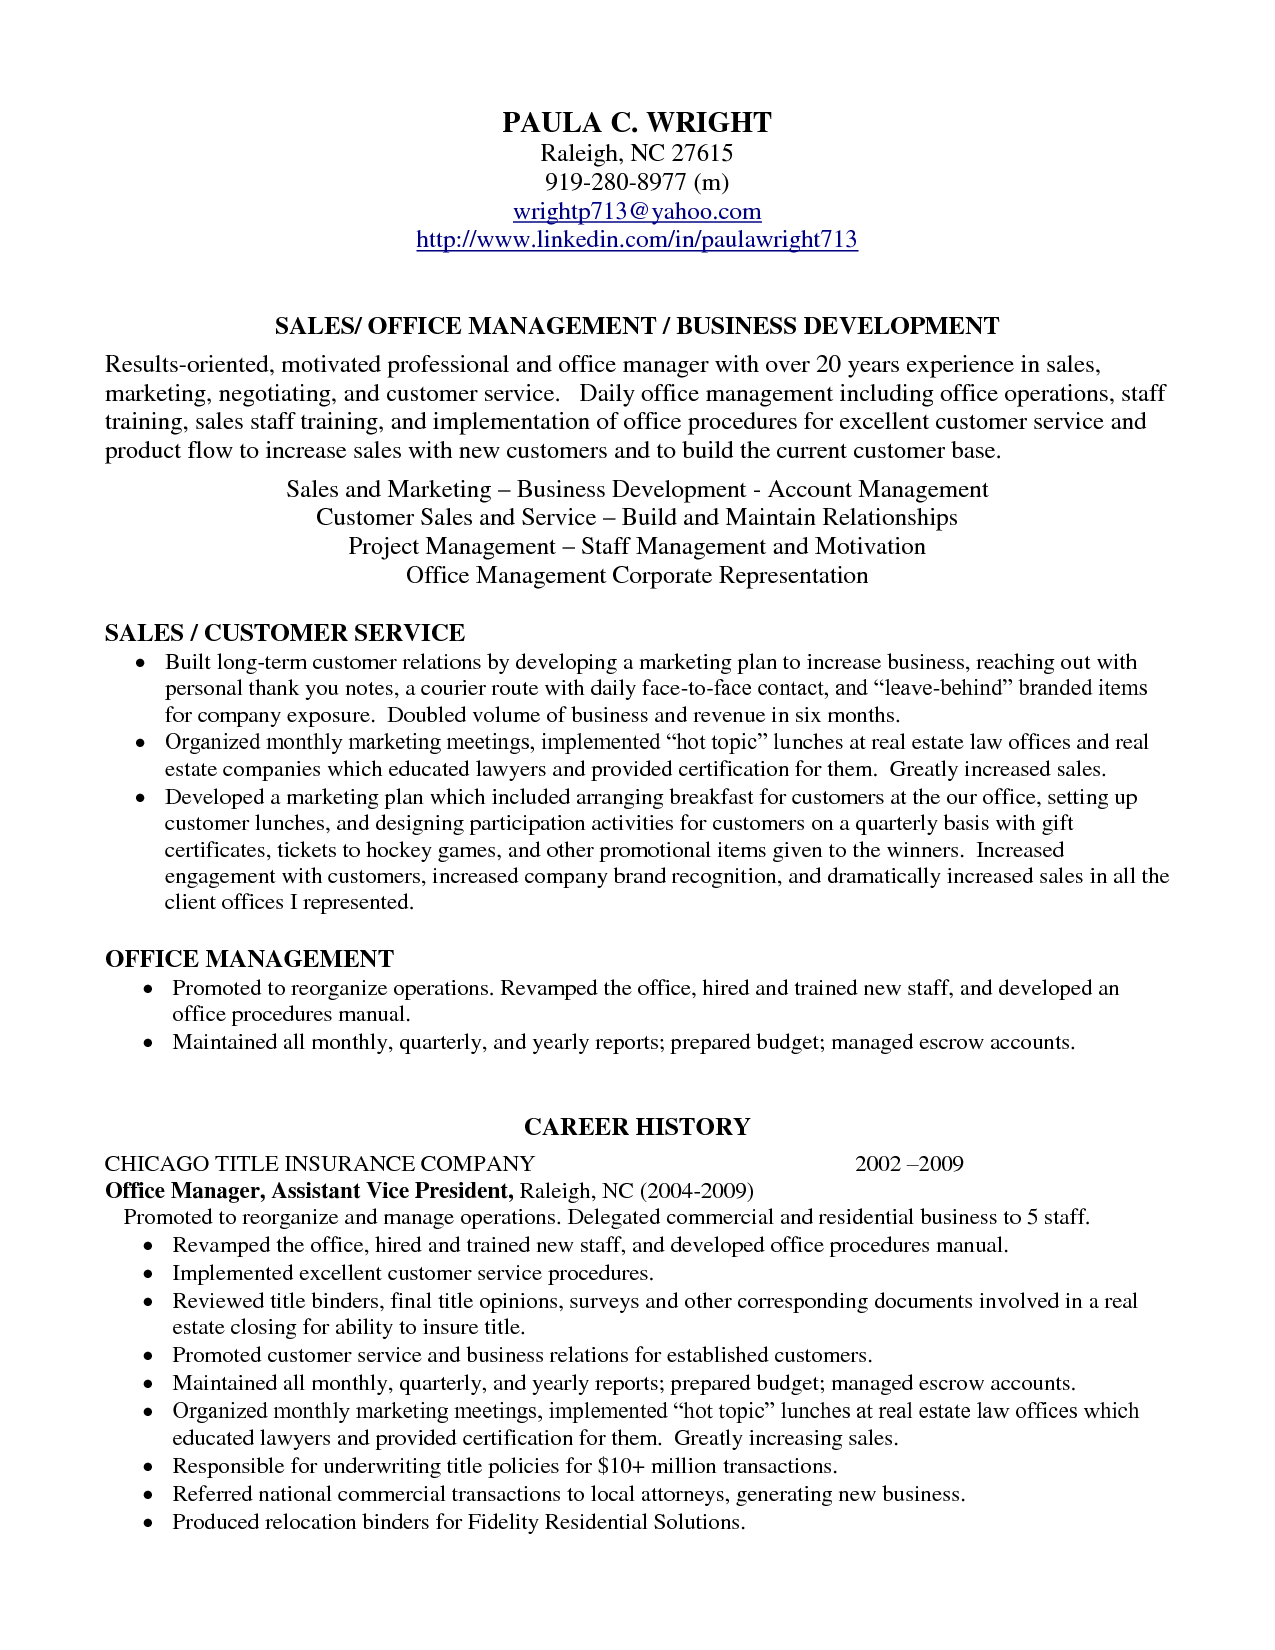 Profile Resume Examples Choose From Thousands Of Professionally Written Free Resume